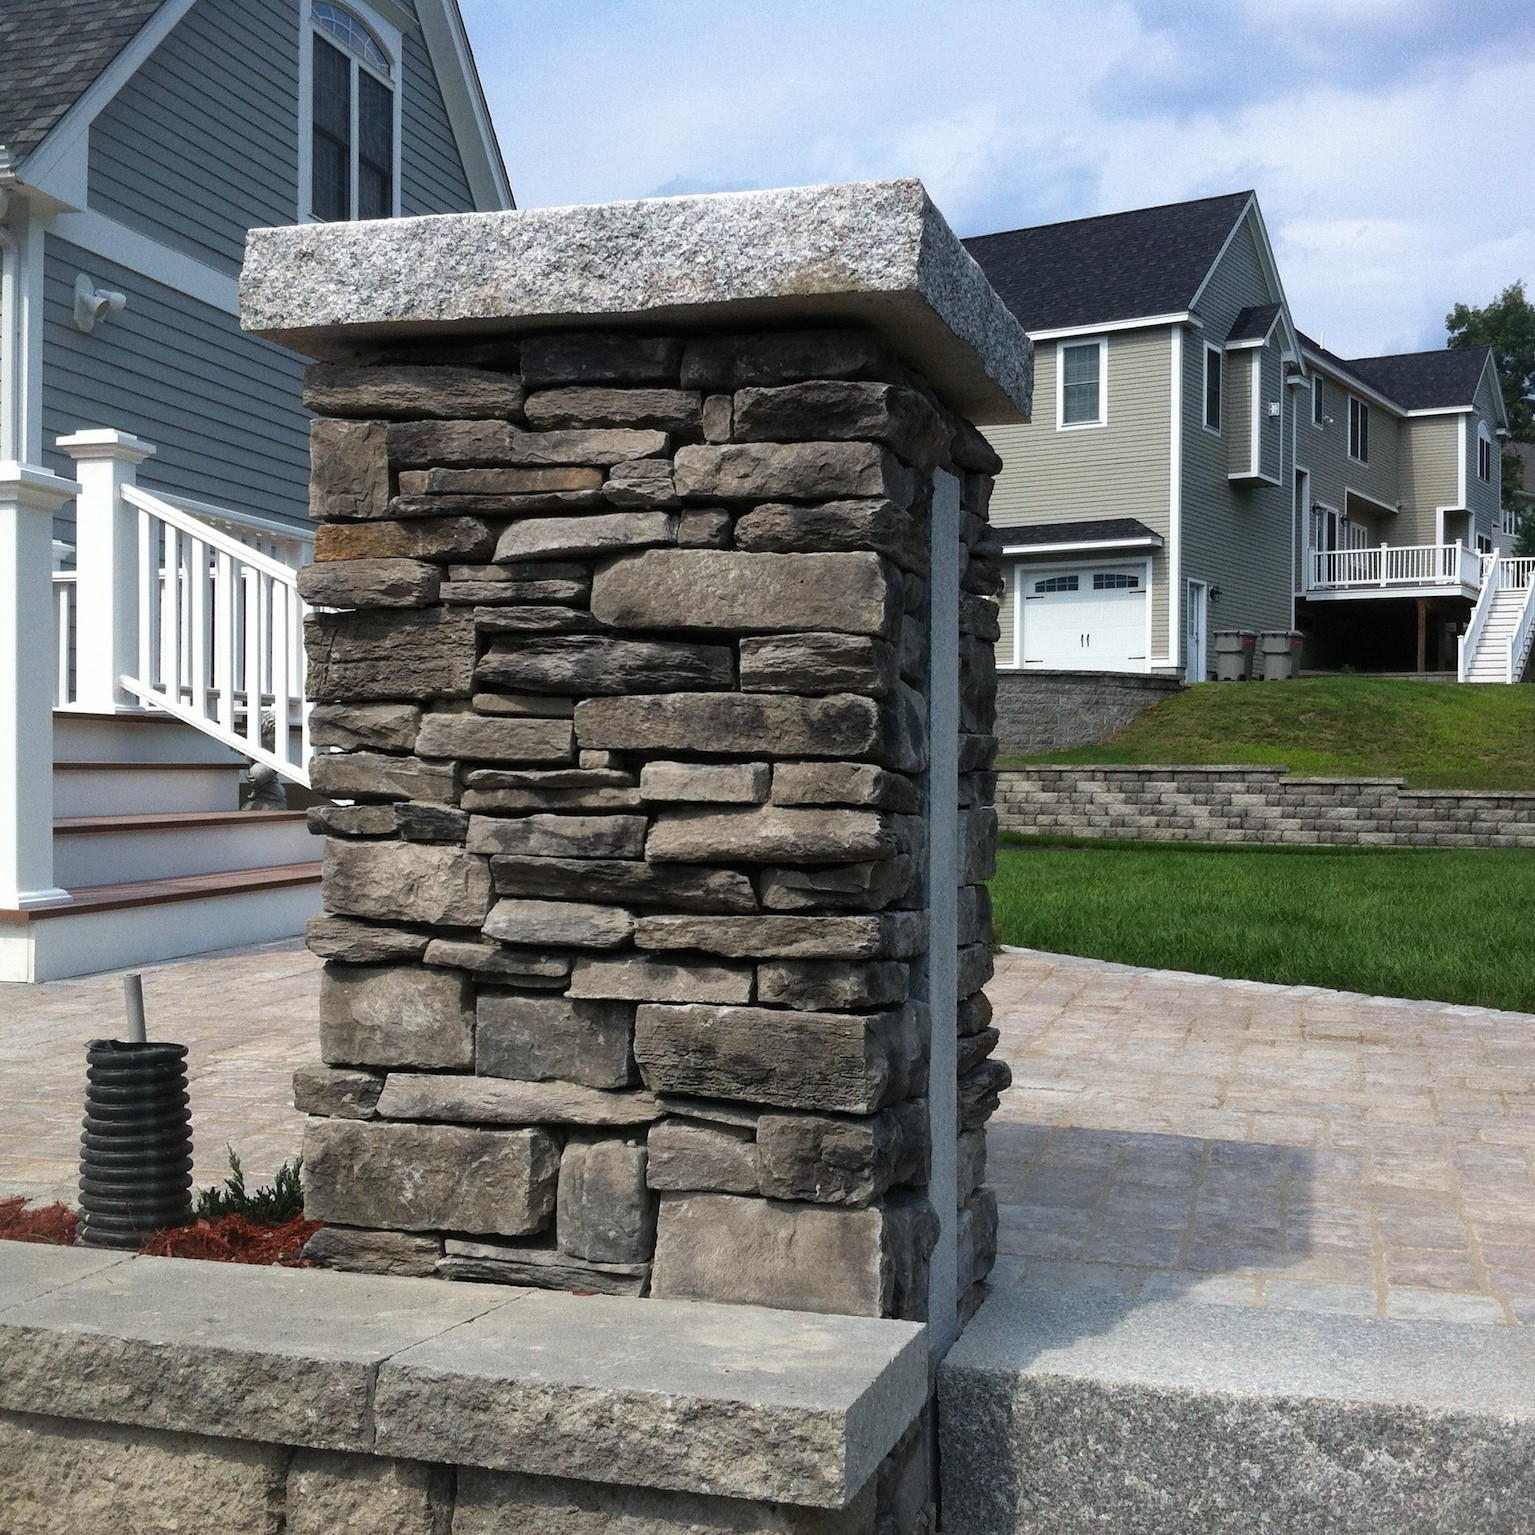 Stone Pillar Patio in Massachusetts